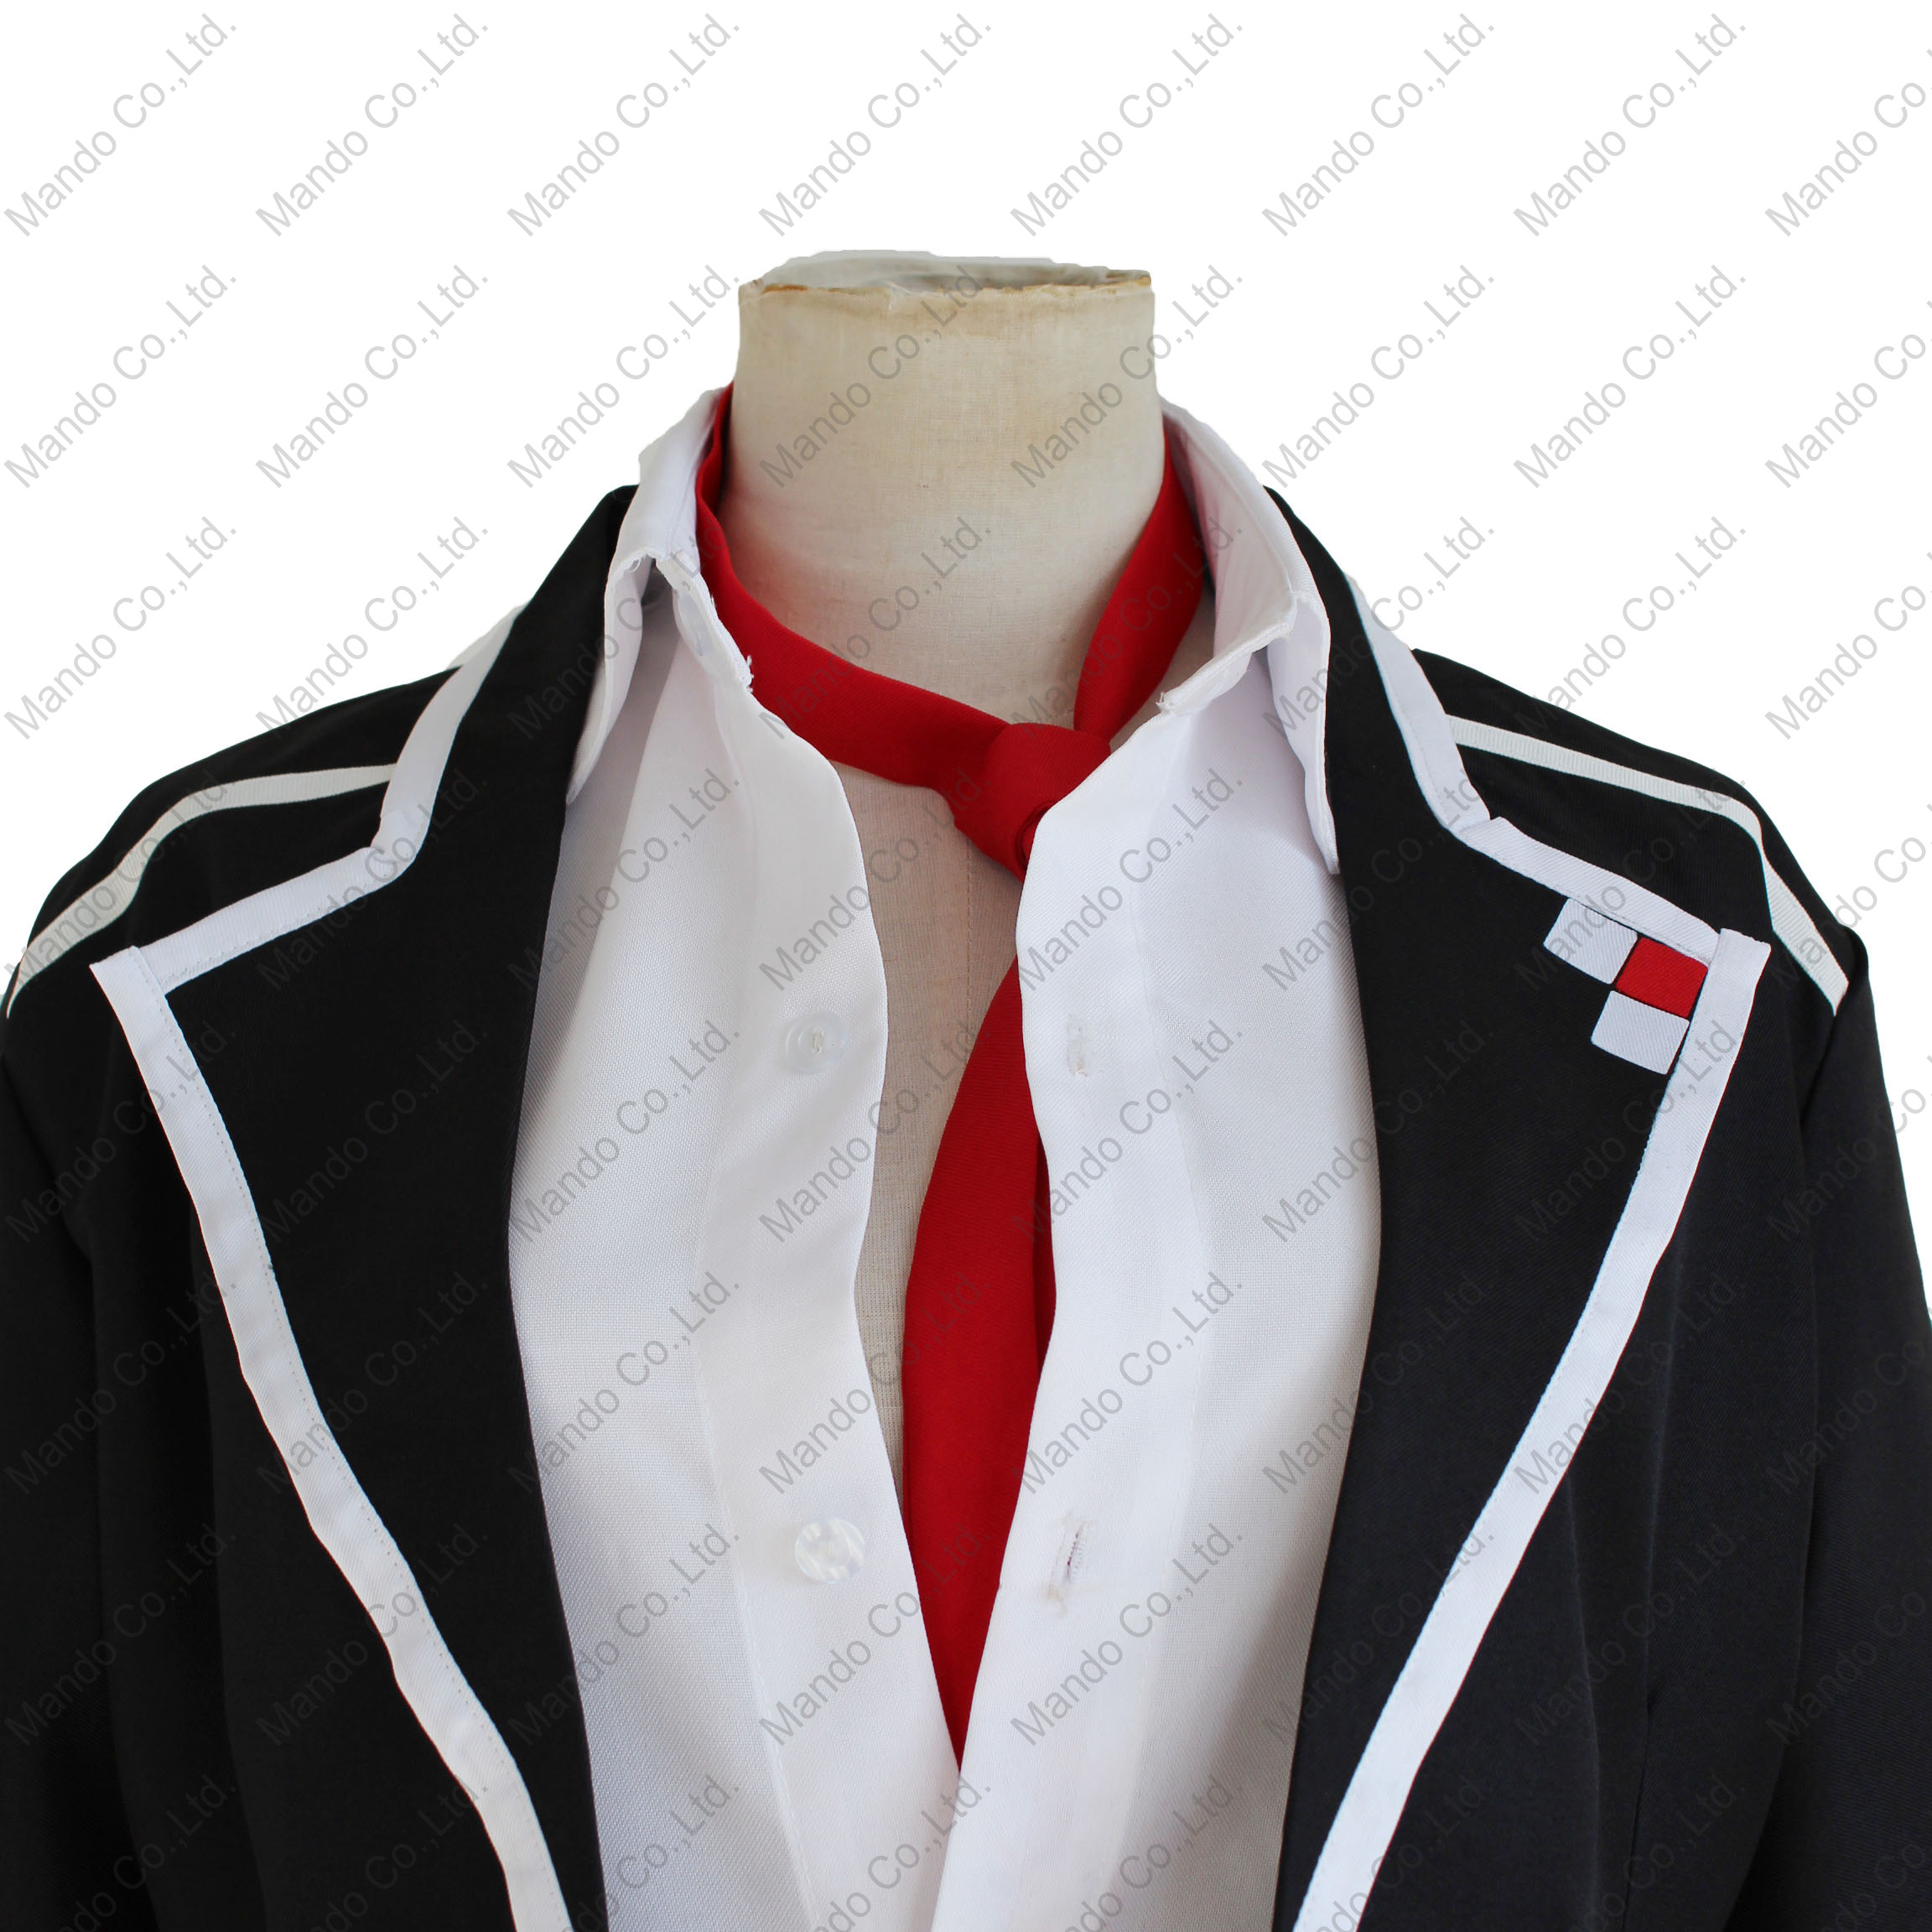 Anime DIABOLIK LOVERS Sakamaki Ayato Cosplay Costumes hommes costume - Costumes - Photo 5